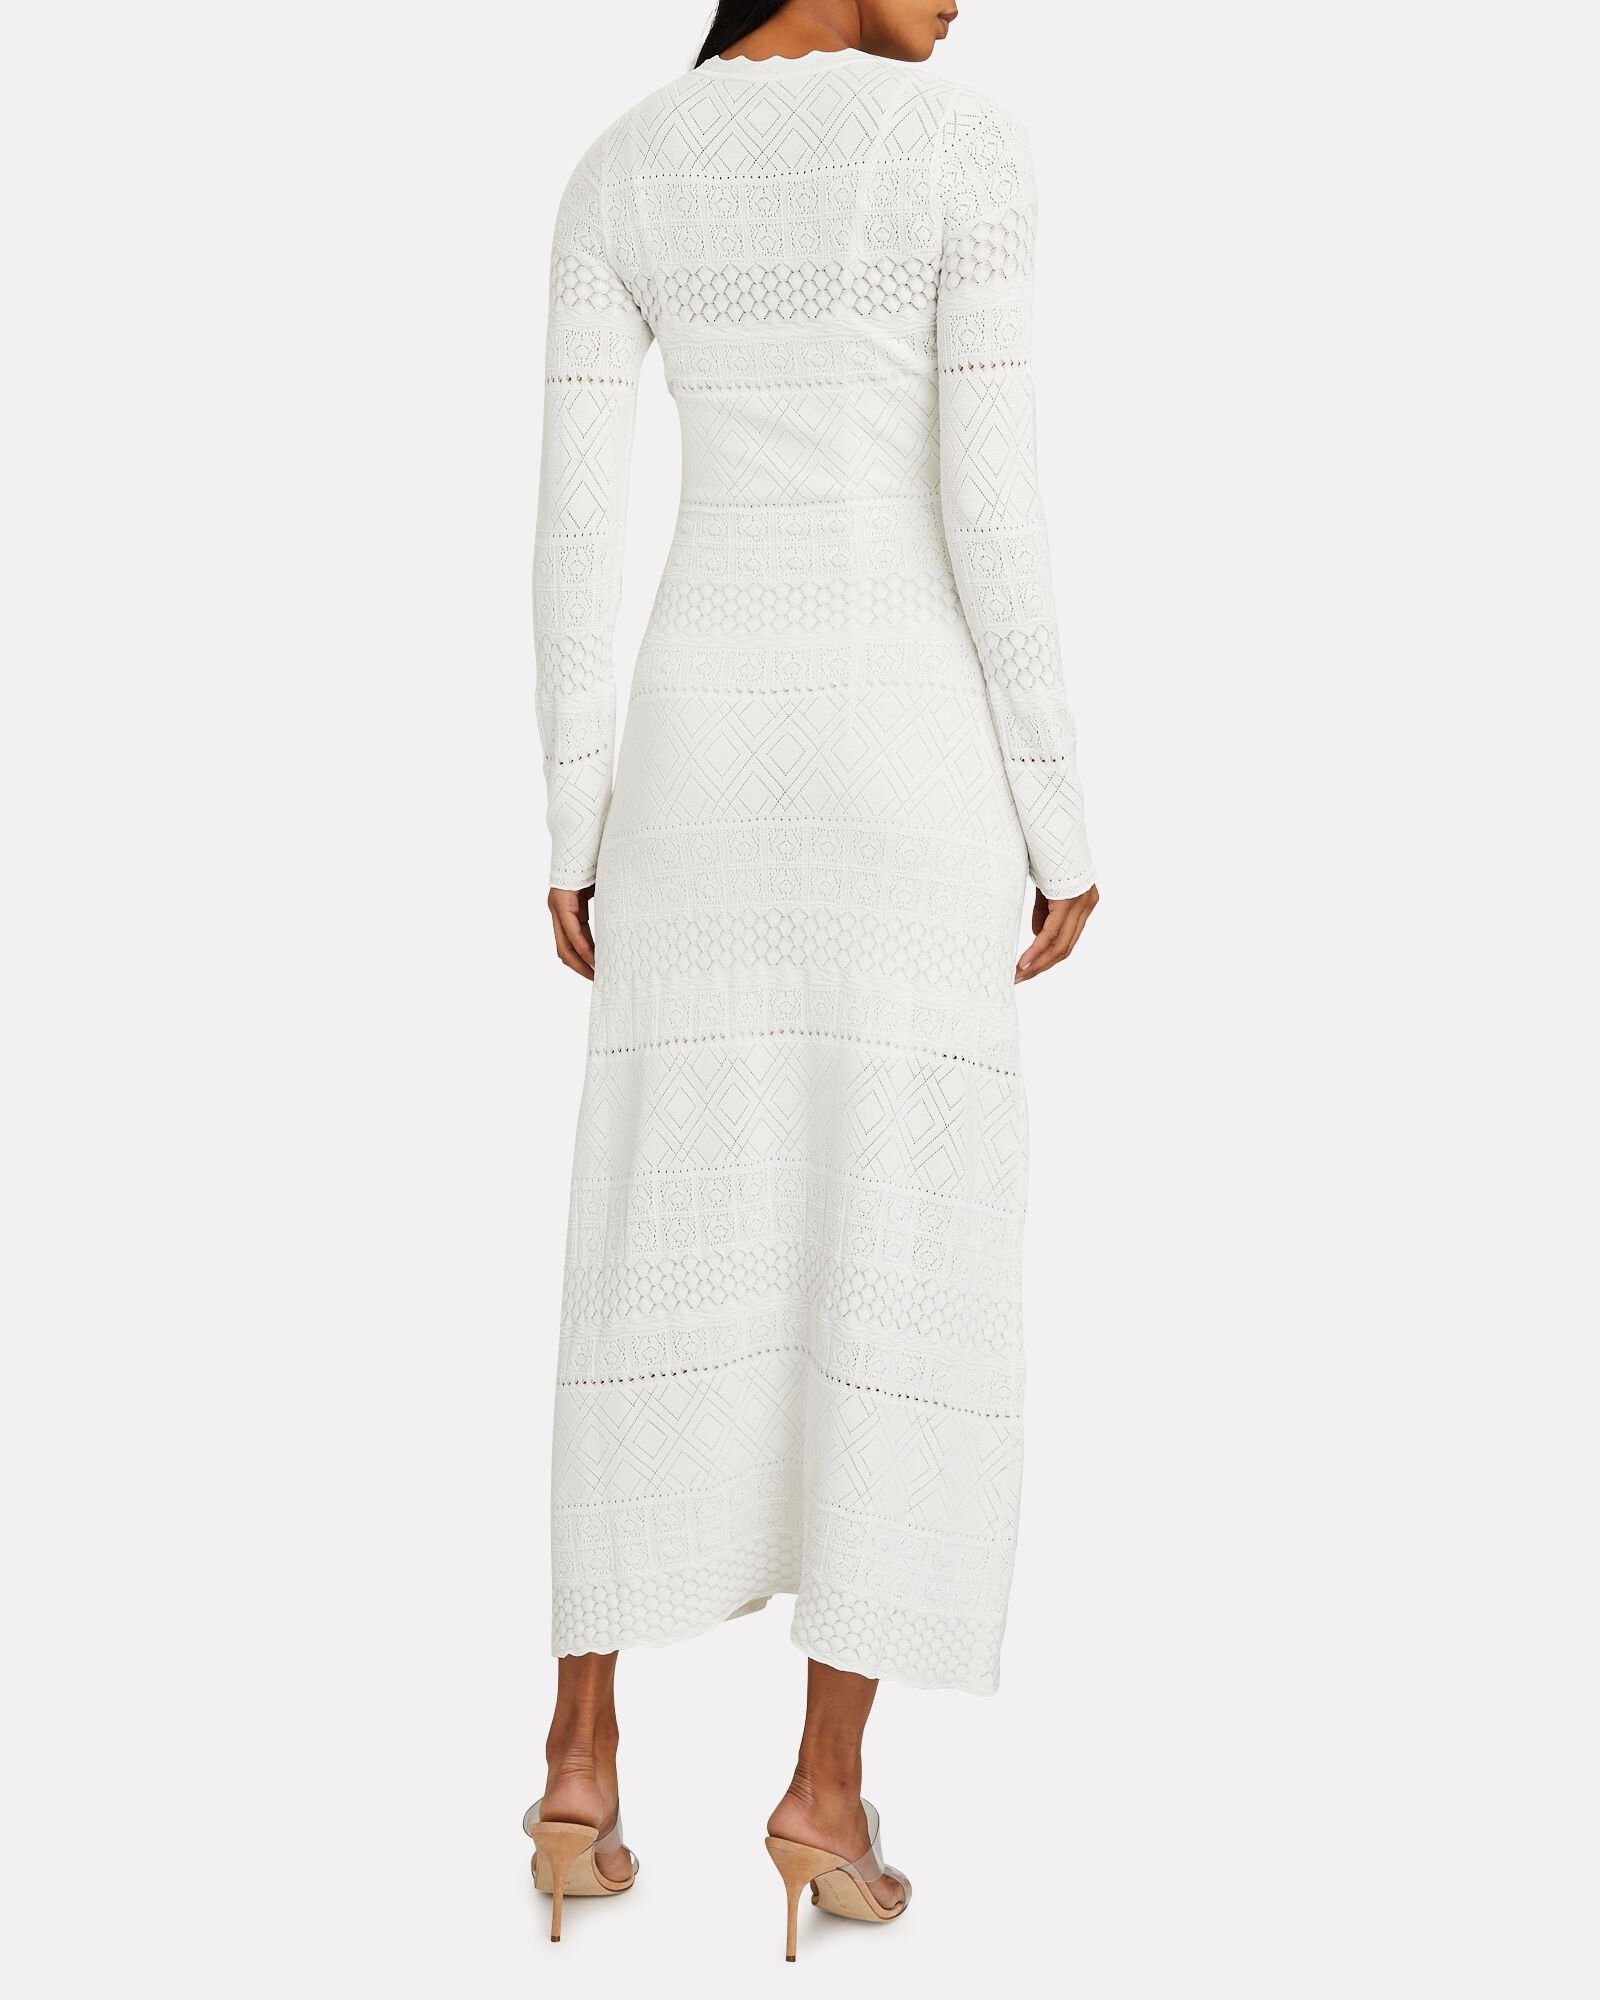 Volta Pointelle Knit Maxi Dress, WHITE, hi-res